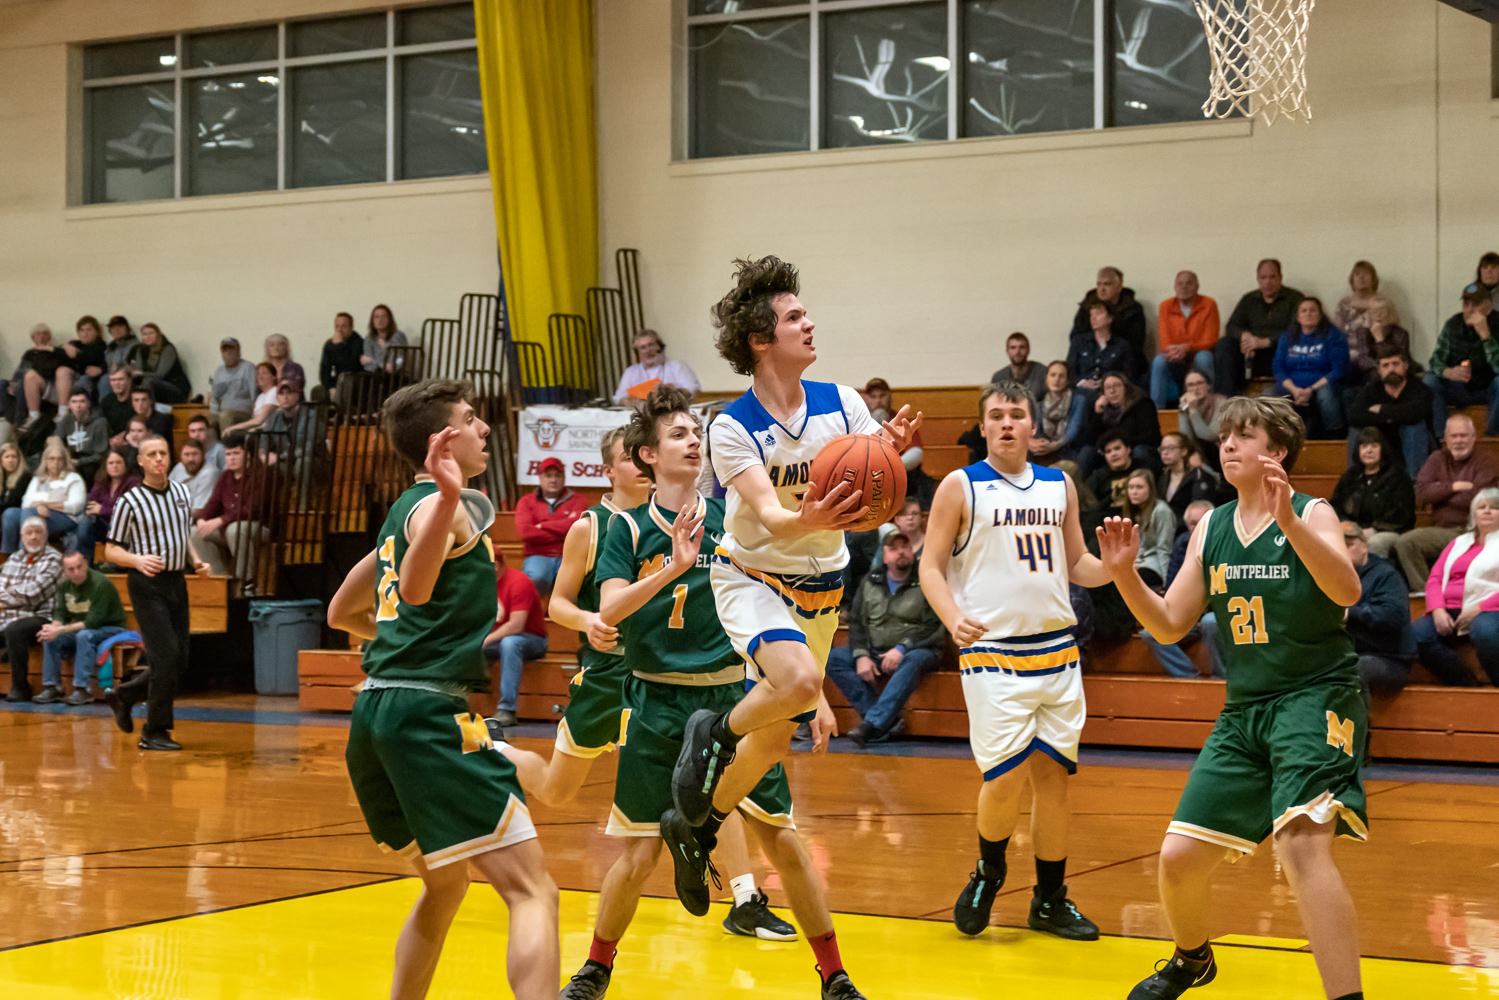 LUHS Boys Basketball v. Montpelier